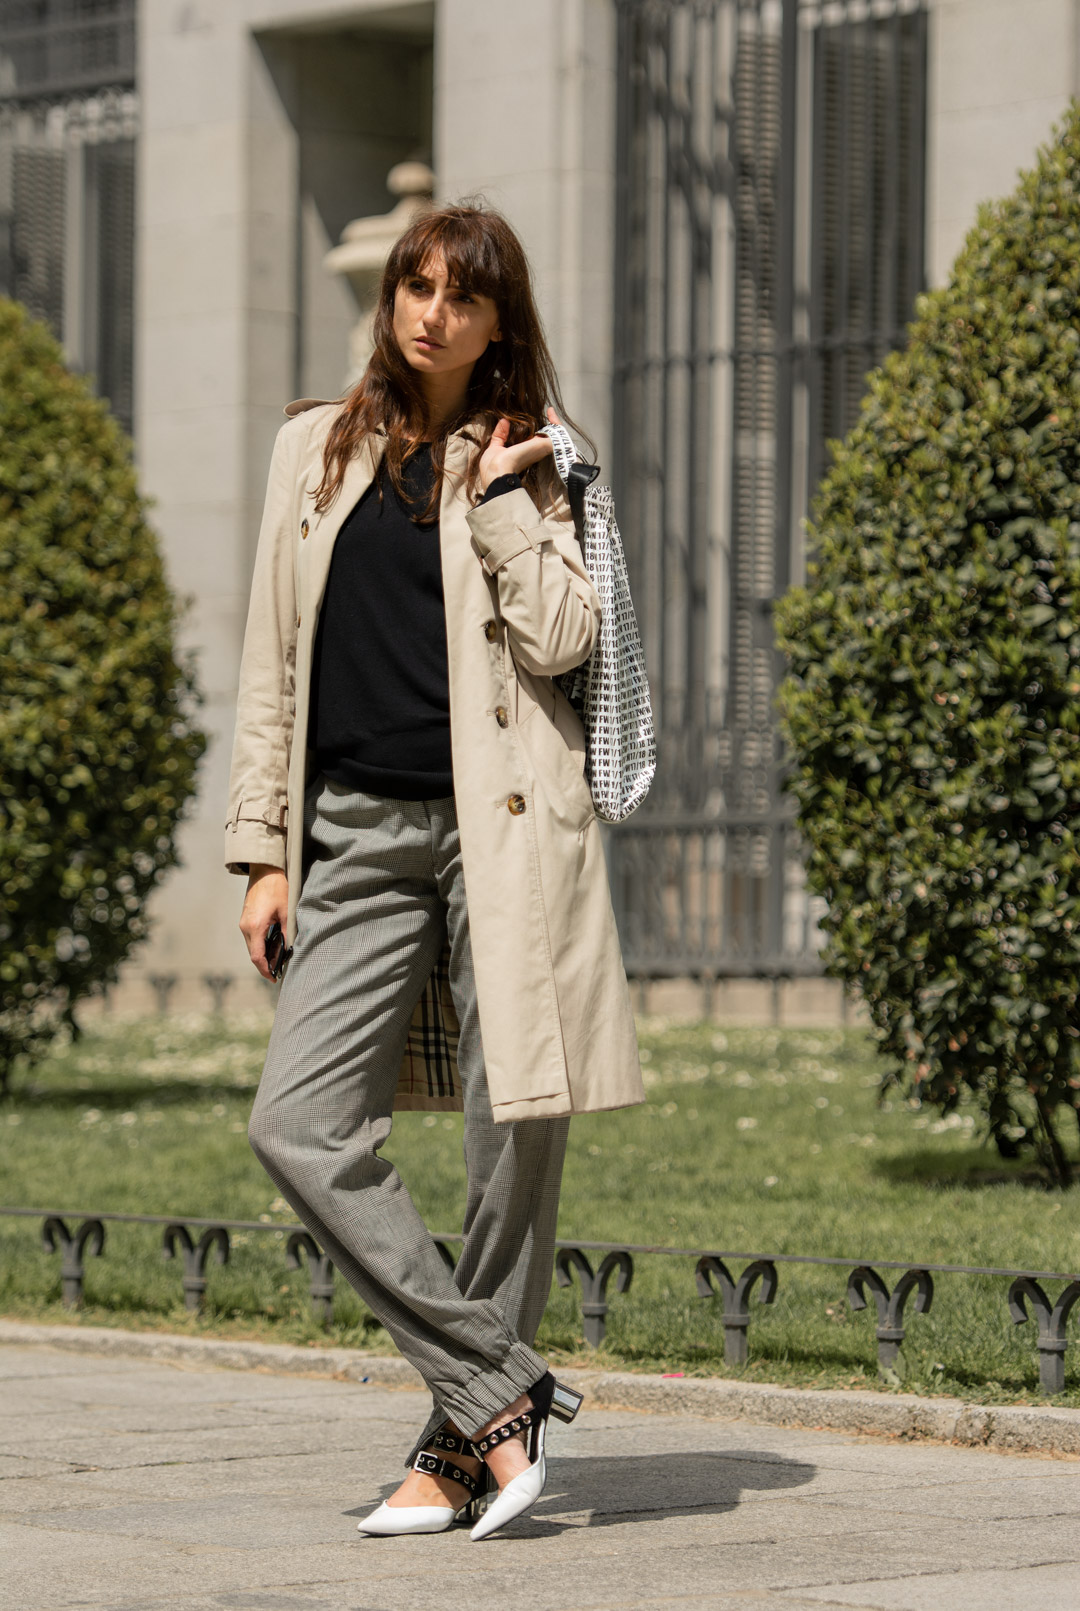 mayte-street-style-burberry-web-07